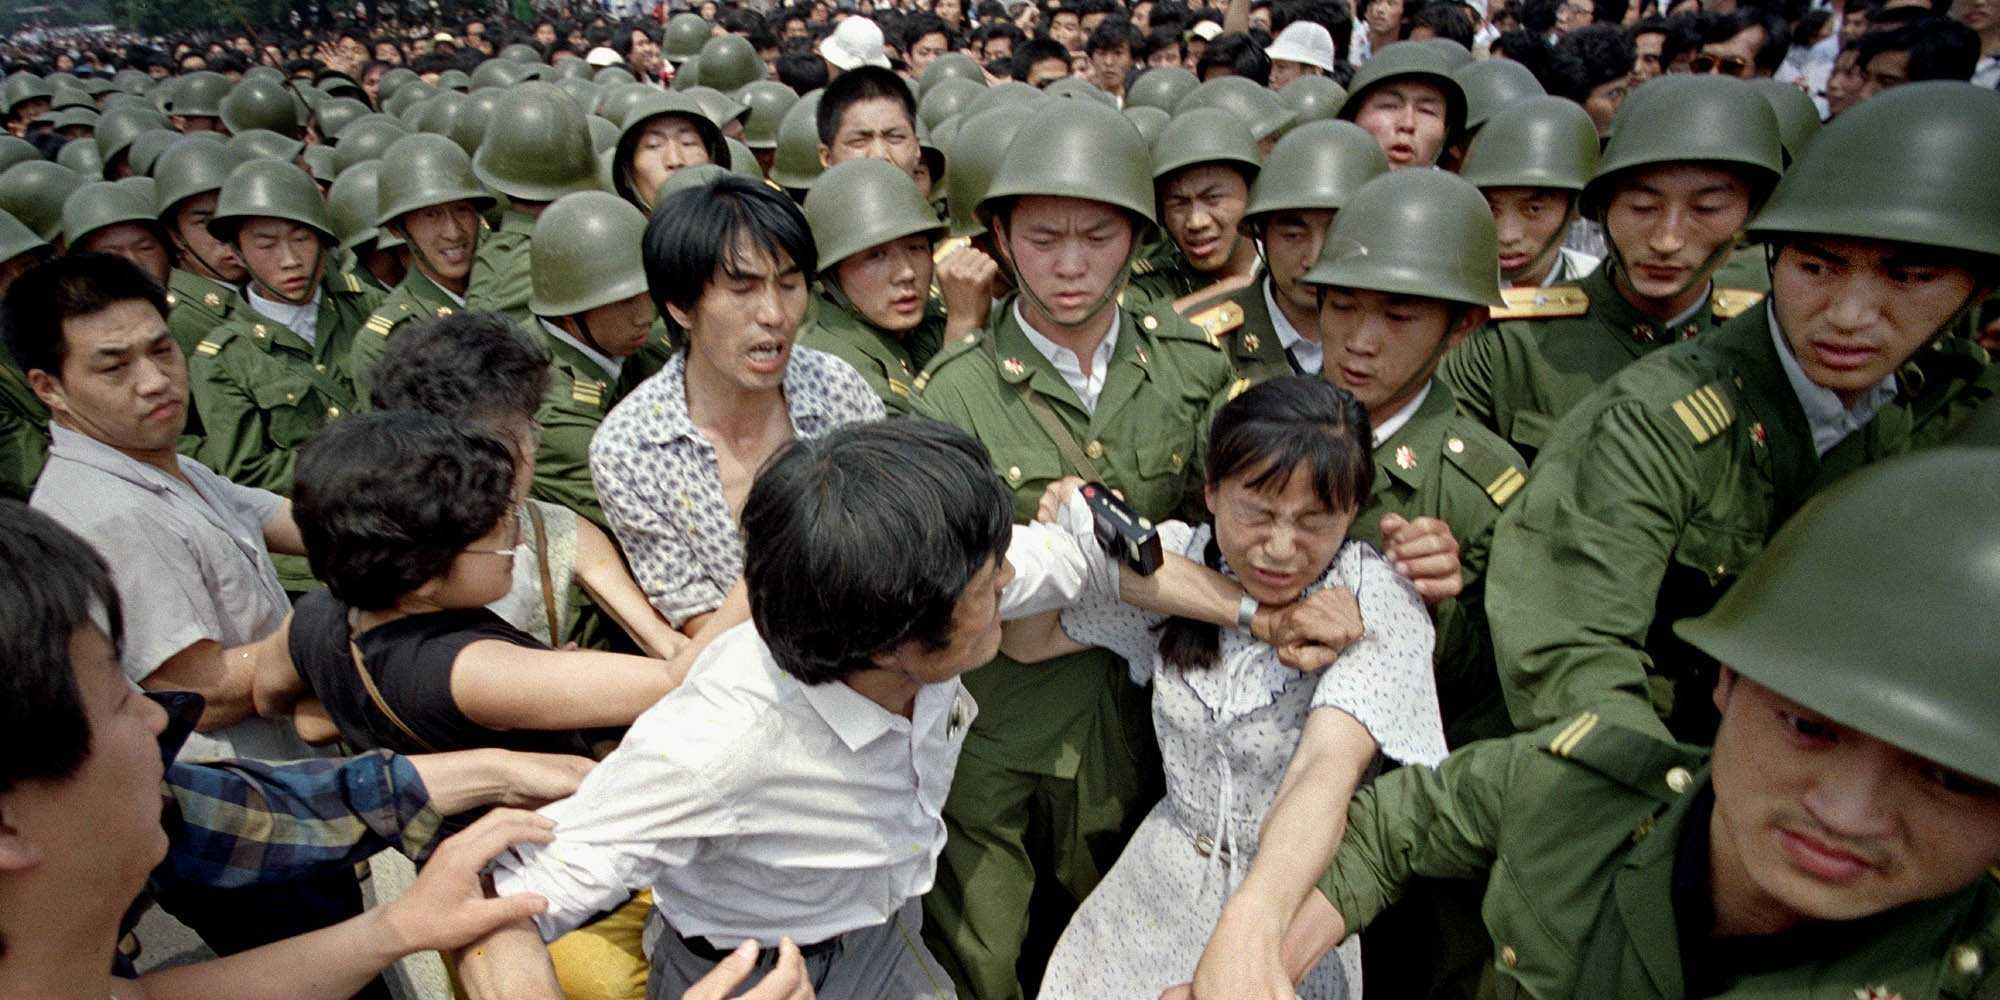 25 Photos From The Tiananmen Square Protests That China Has Tried